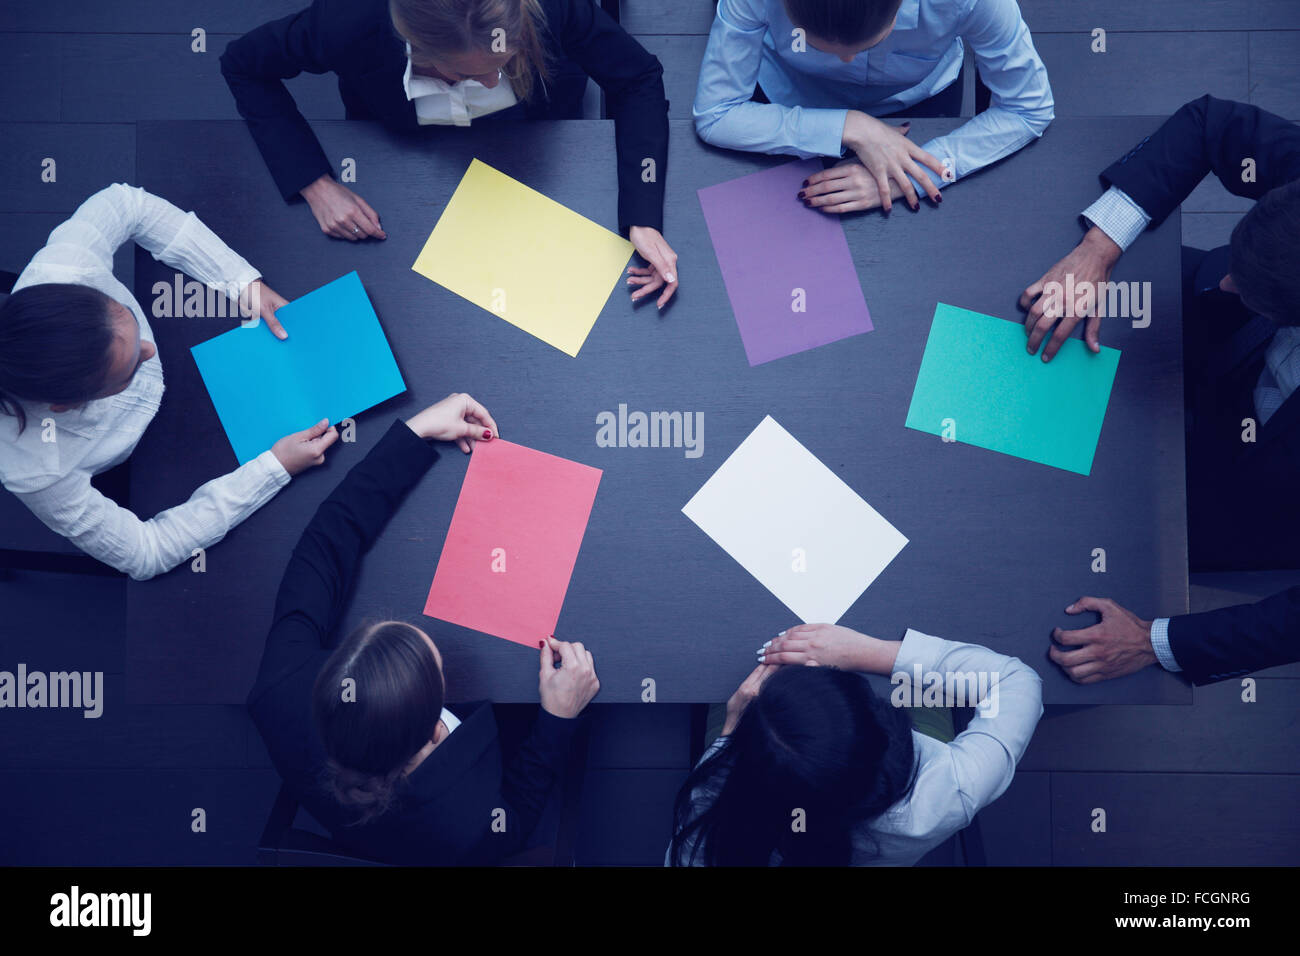 Group of business people with blank colorful paper, new project concept - Stock Image